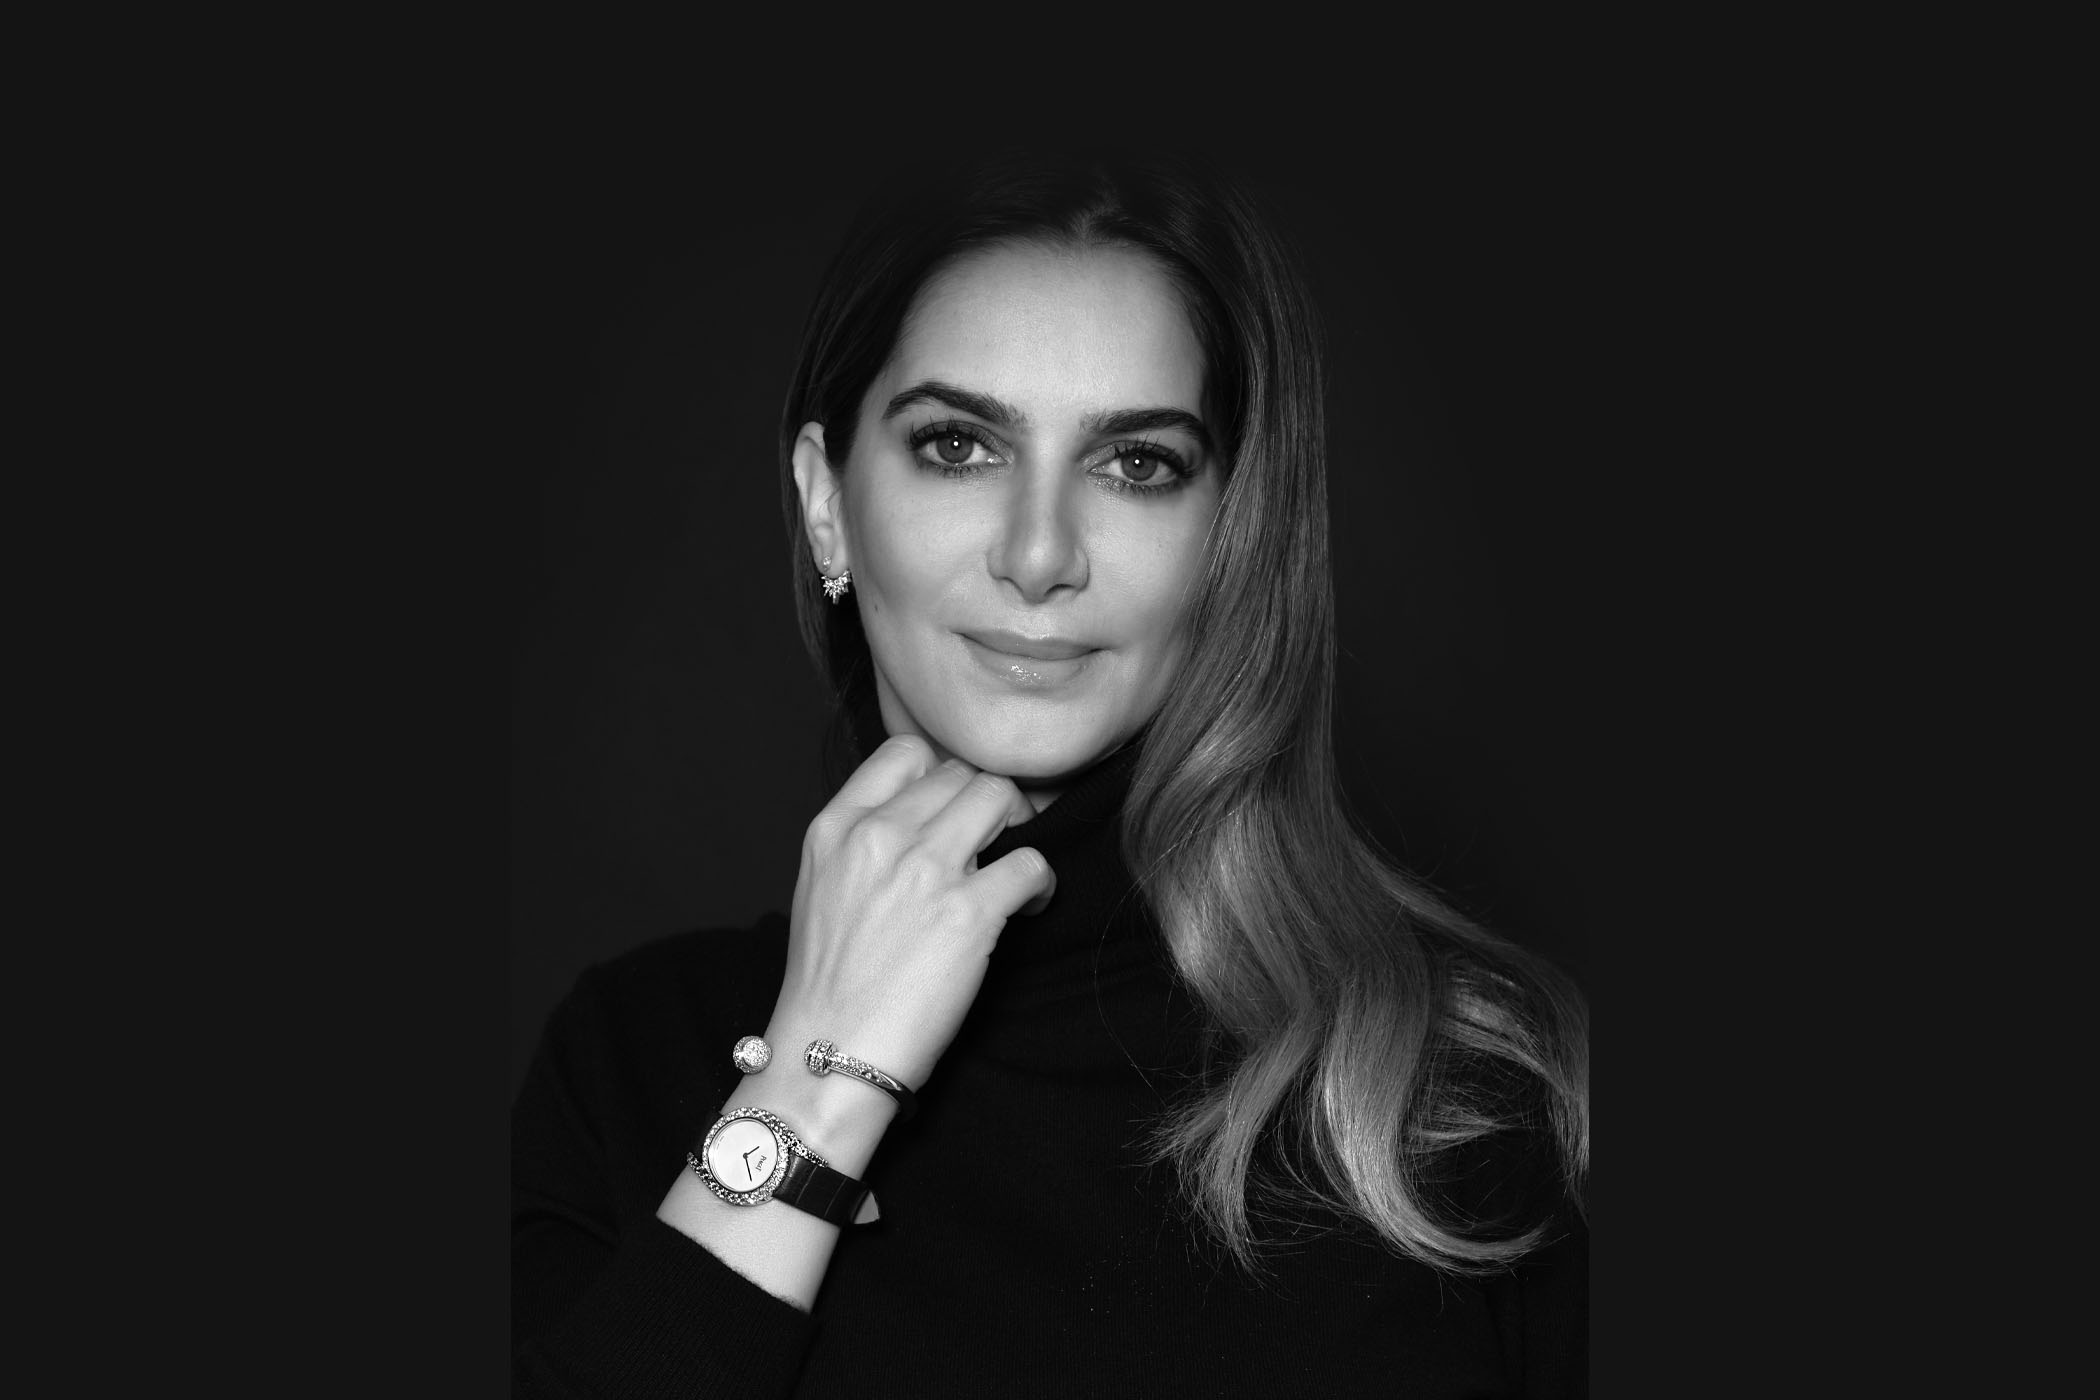 Interview Chabi Nouri, CEO of Piaget, on the 2021 Collection